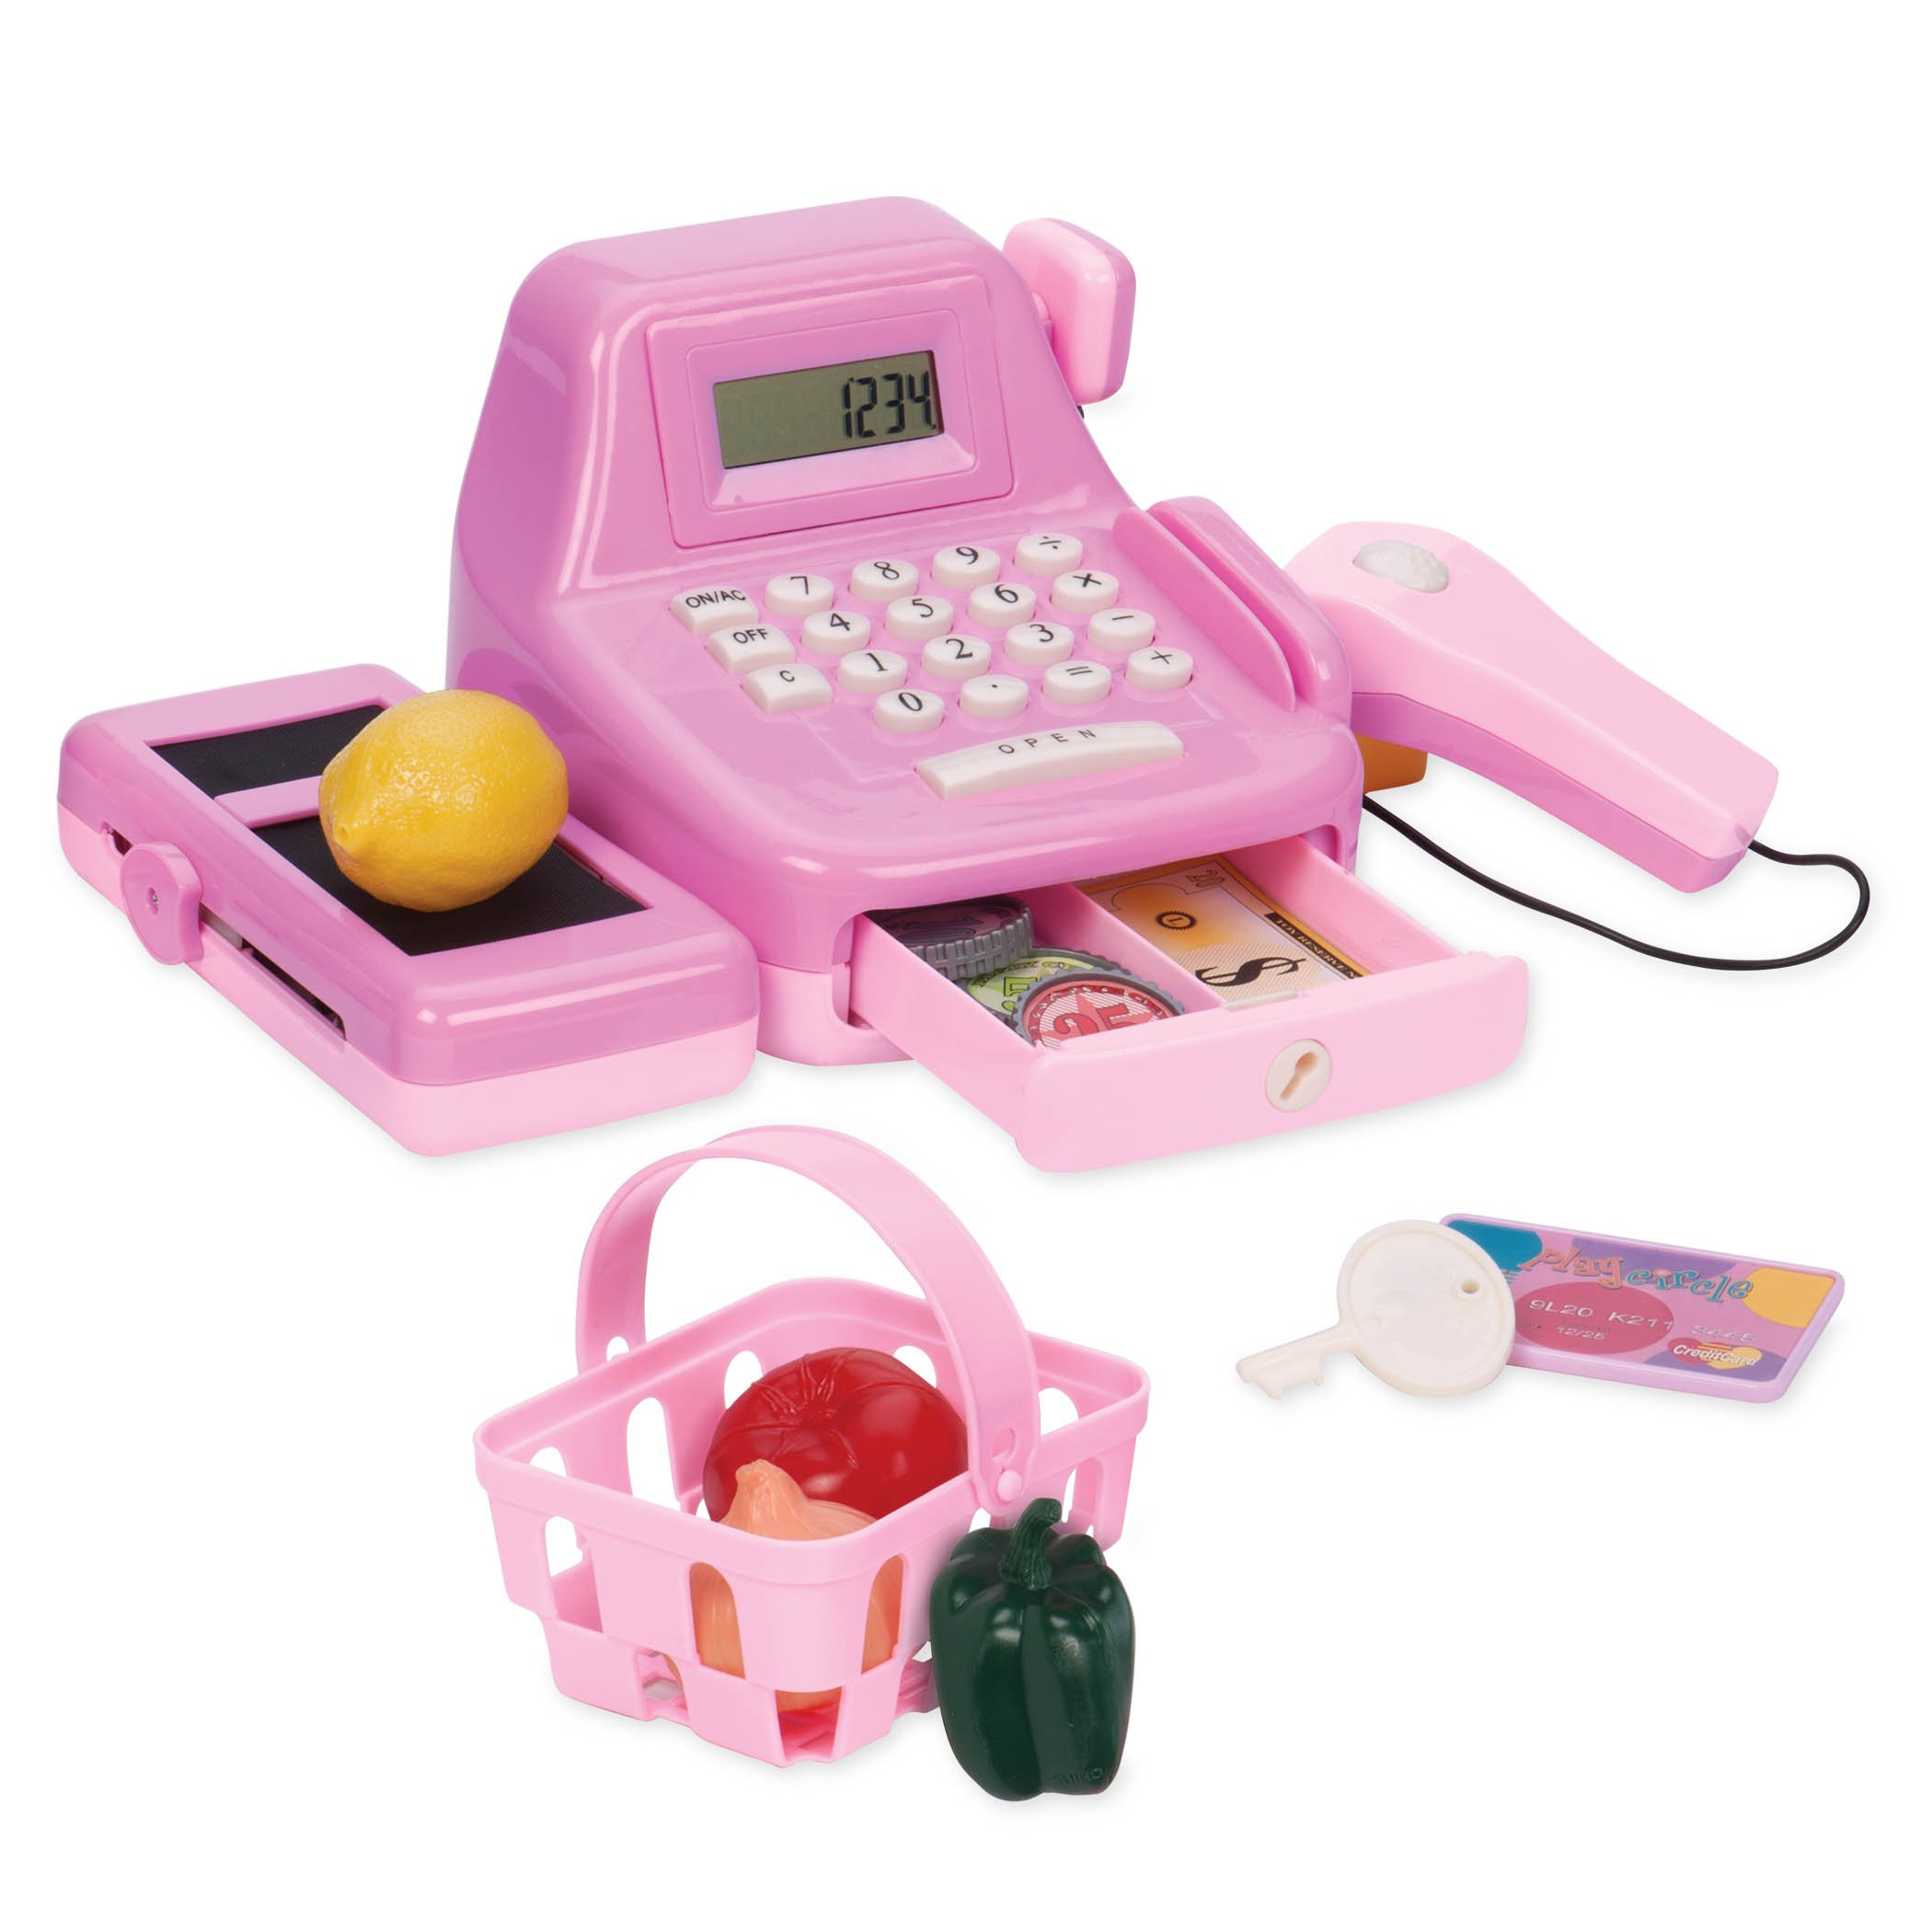 Play Circle by Battat - Cha-Ching Cash Register Set - 26-piece Kids Toy Cash Register With Scanner, Calculator, Money, and Sounds - Plastic Cash Register Toy For Kids Age 3 Years and Up by Play Circle by Battat